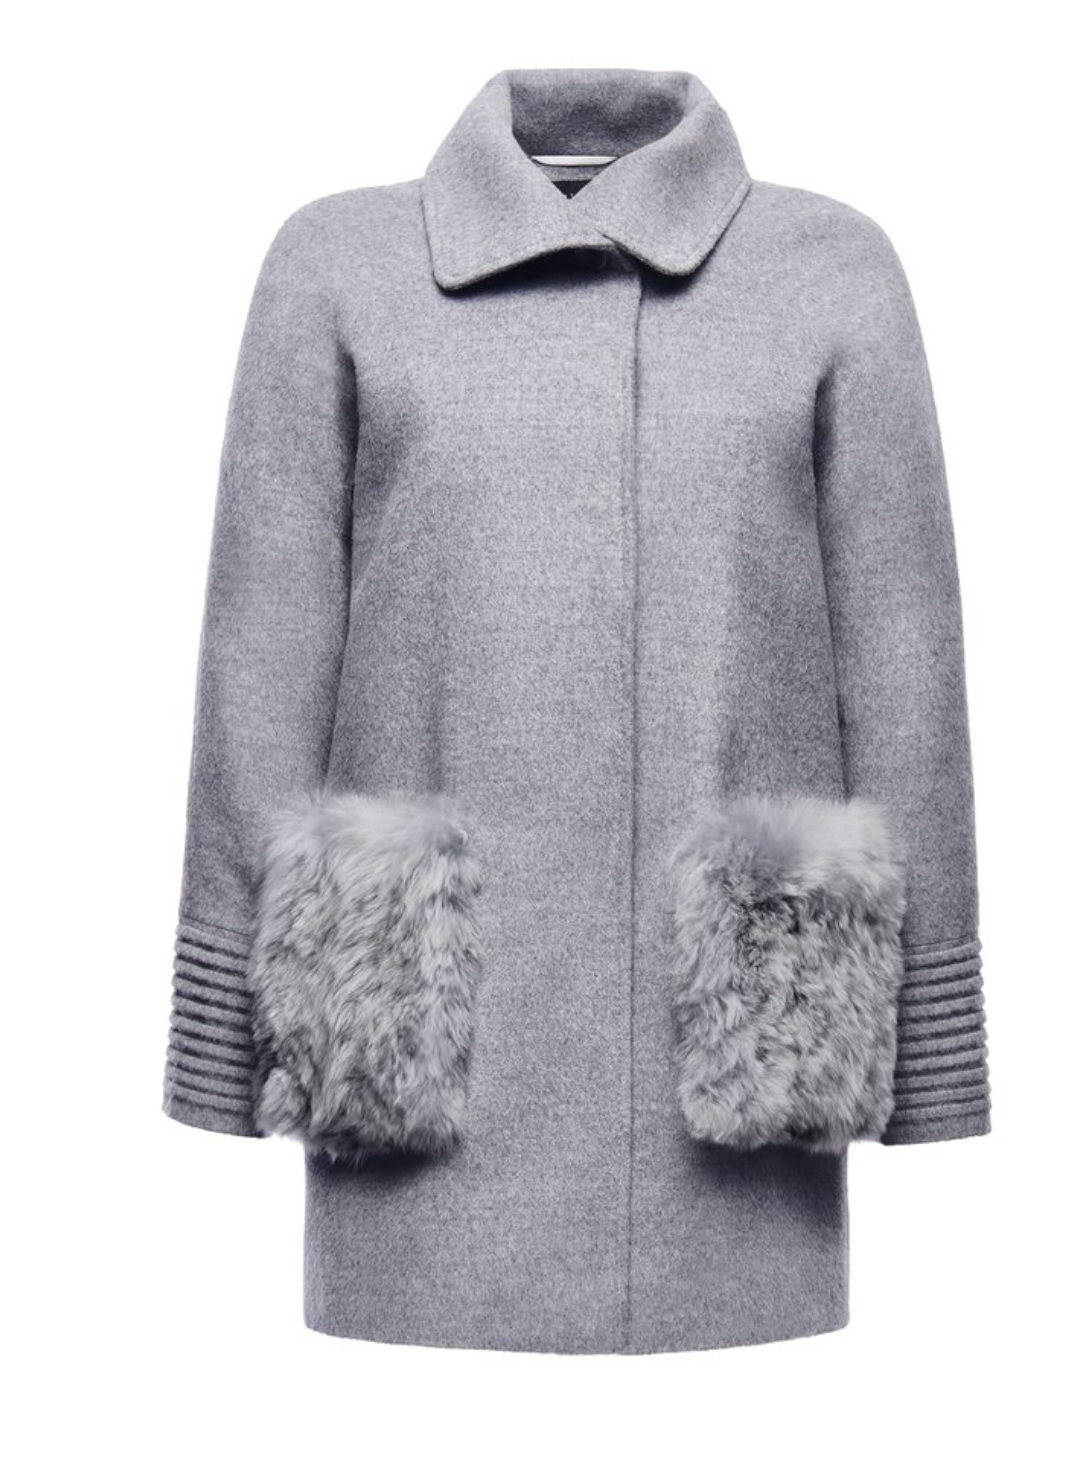 Raglan Sleeve Straight Cut Coat w/Fur Pockets in Shale Grey